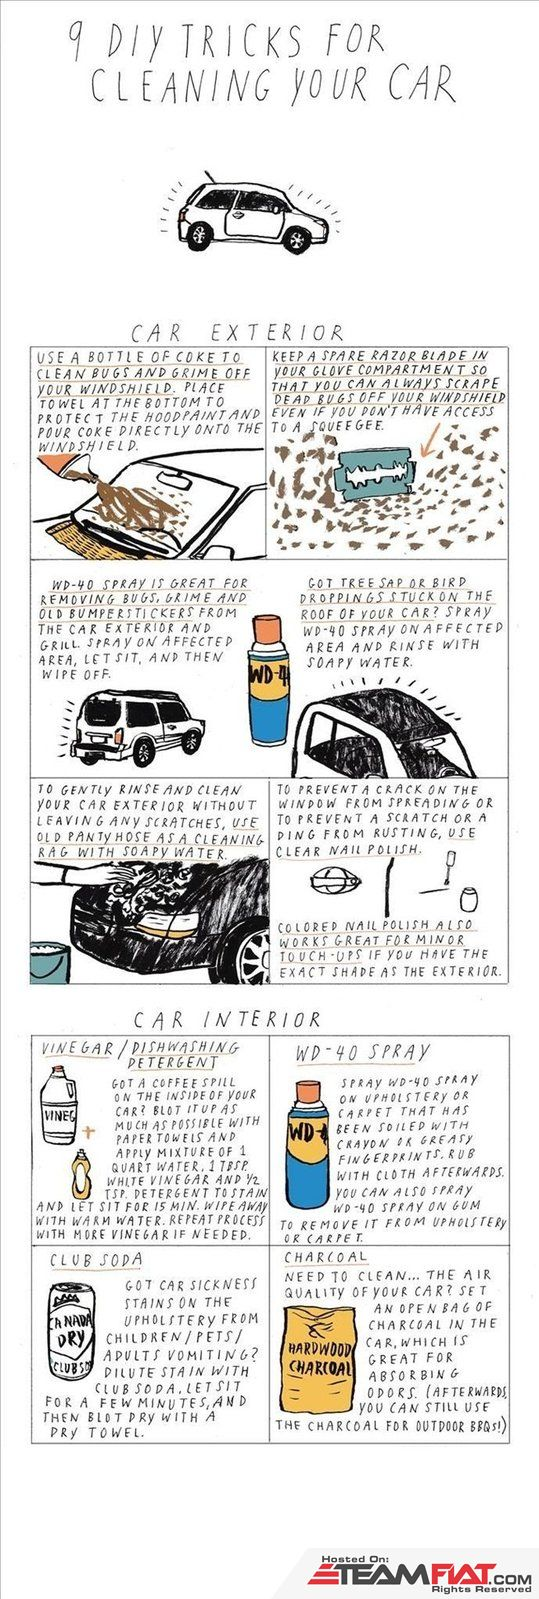 9-diy-tricks-for-cleaning-your-car.w654.jpg